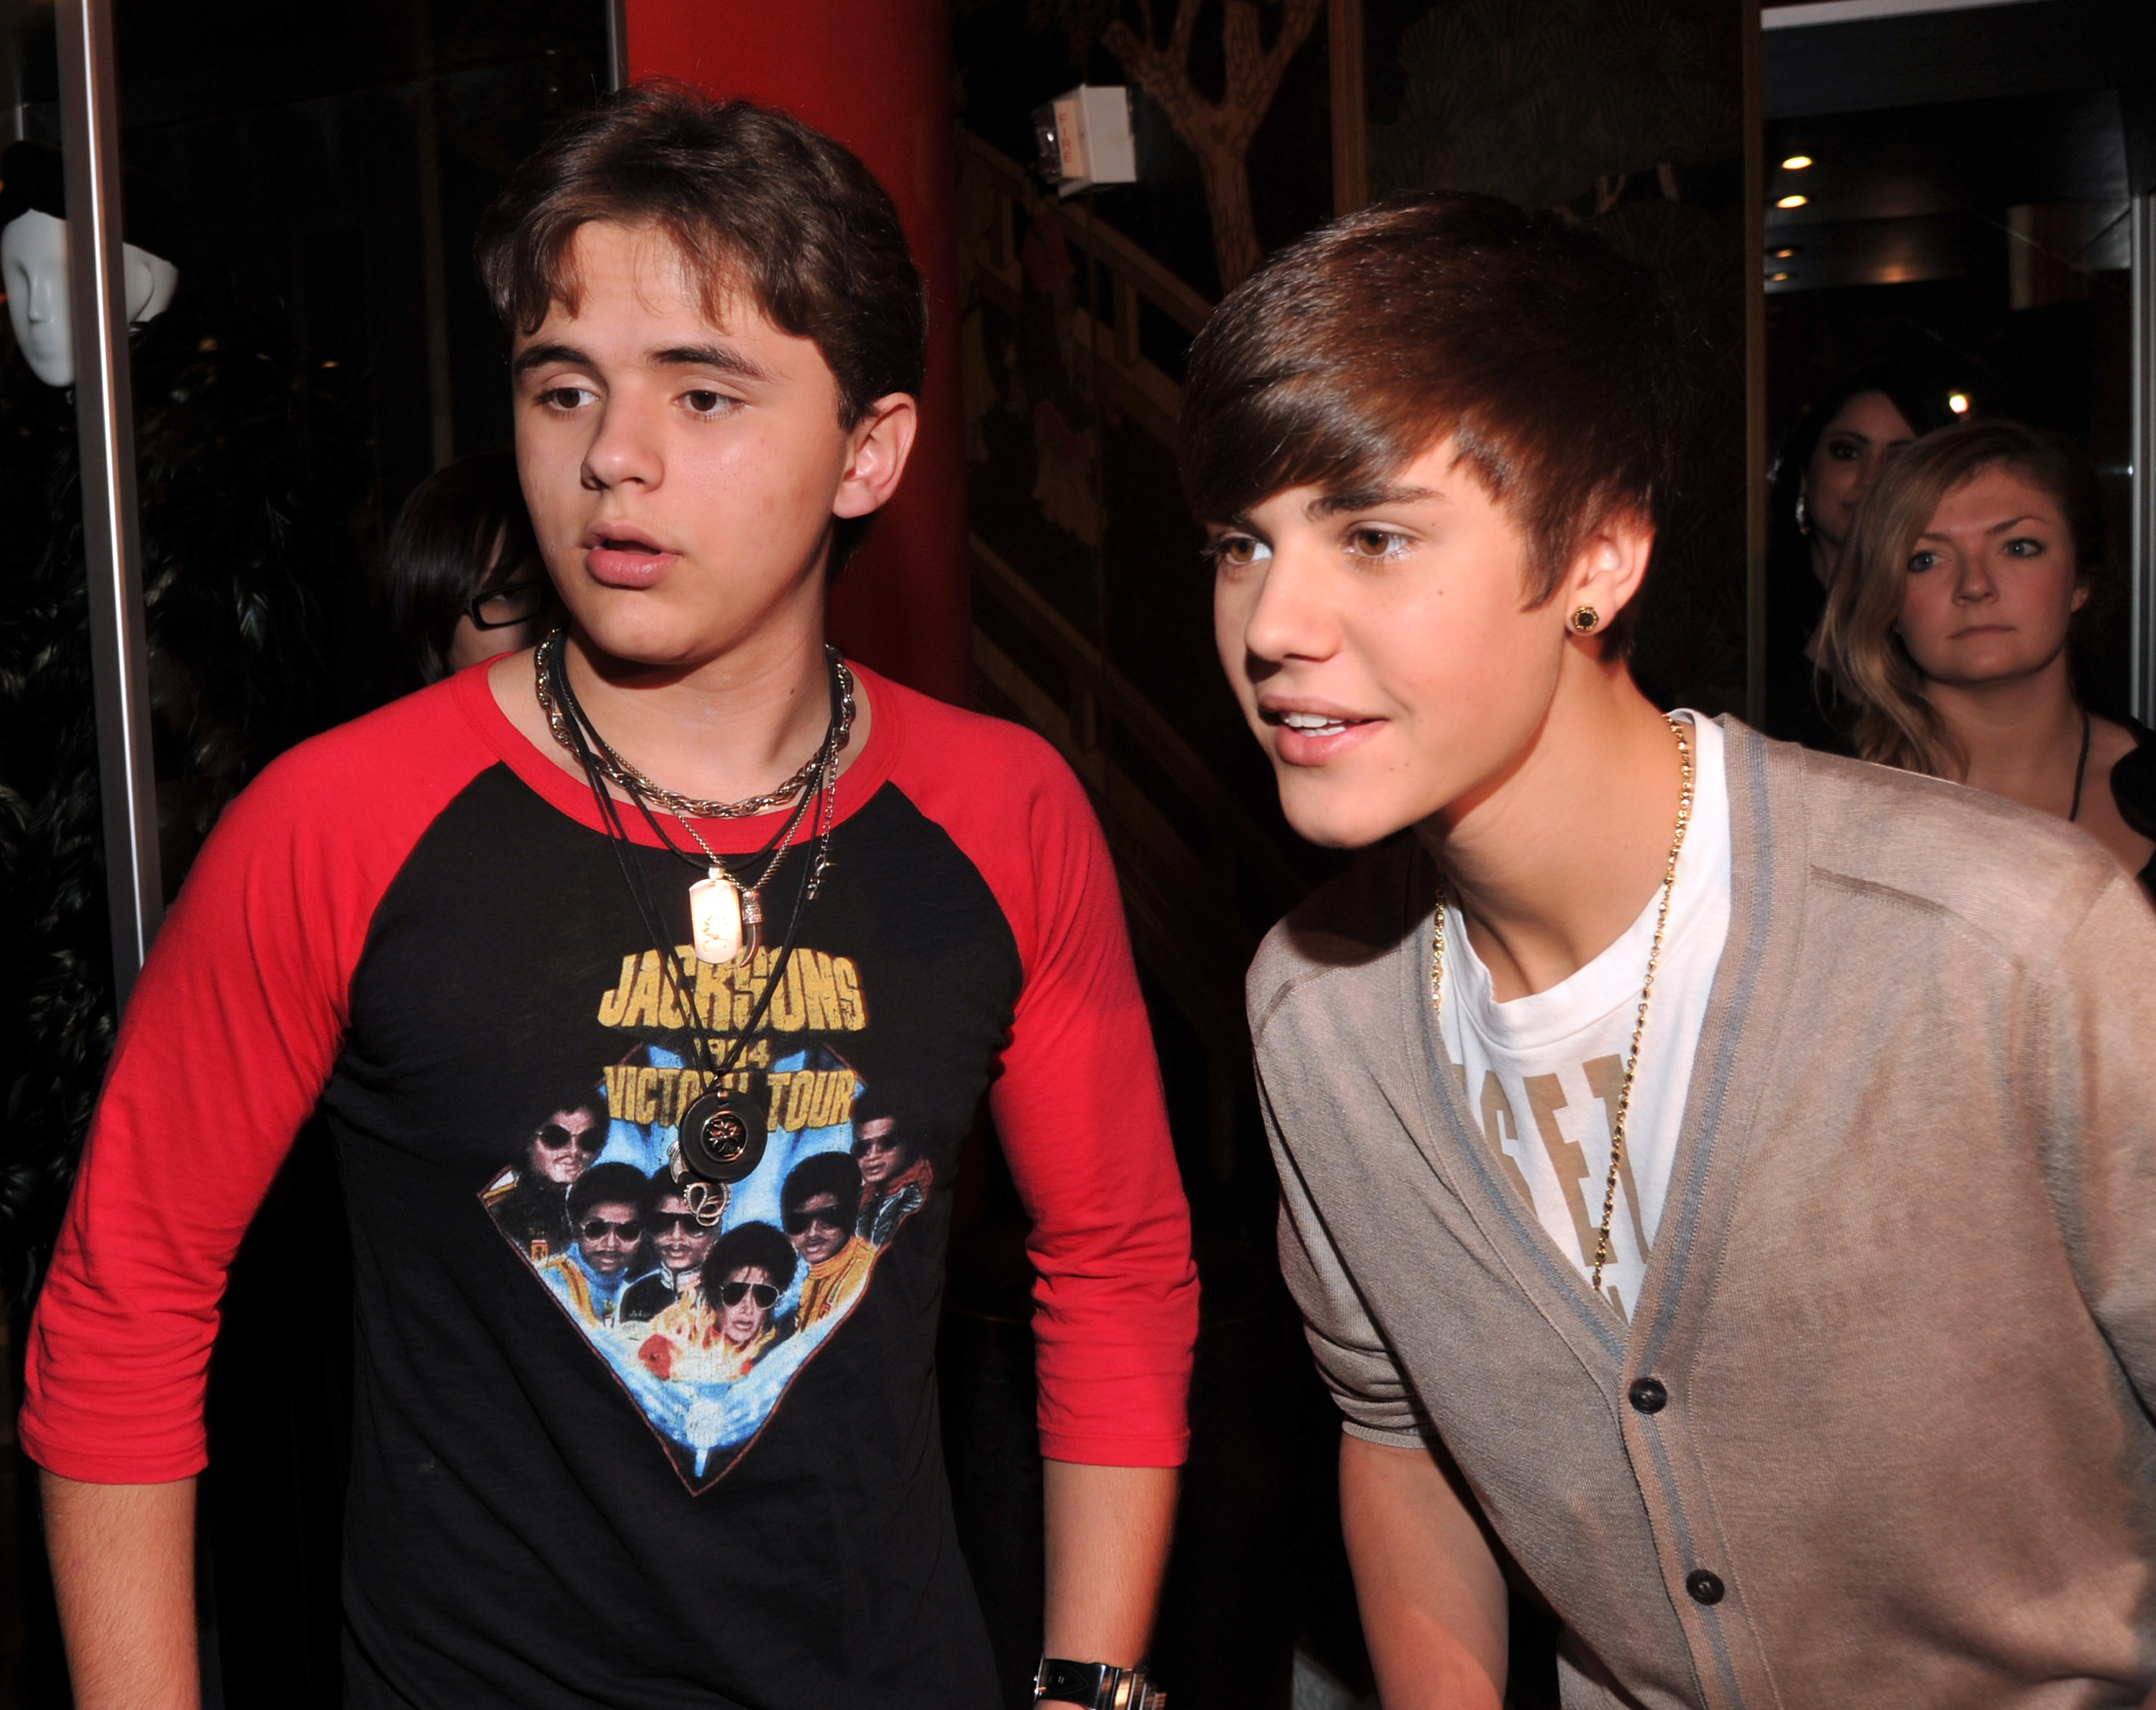 LOS ANGELES, CA - JANUARY 26:  Prince Michael Jackson and Justin Bieber attend the immortalization of Michael Jackson at Grau